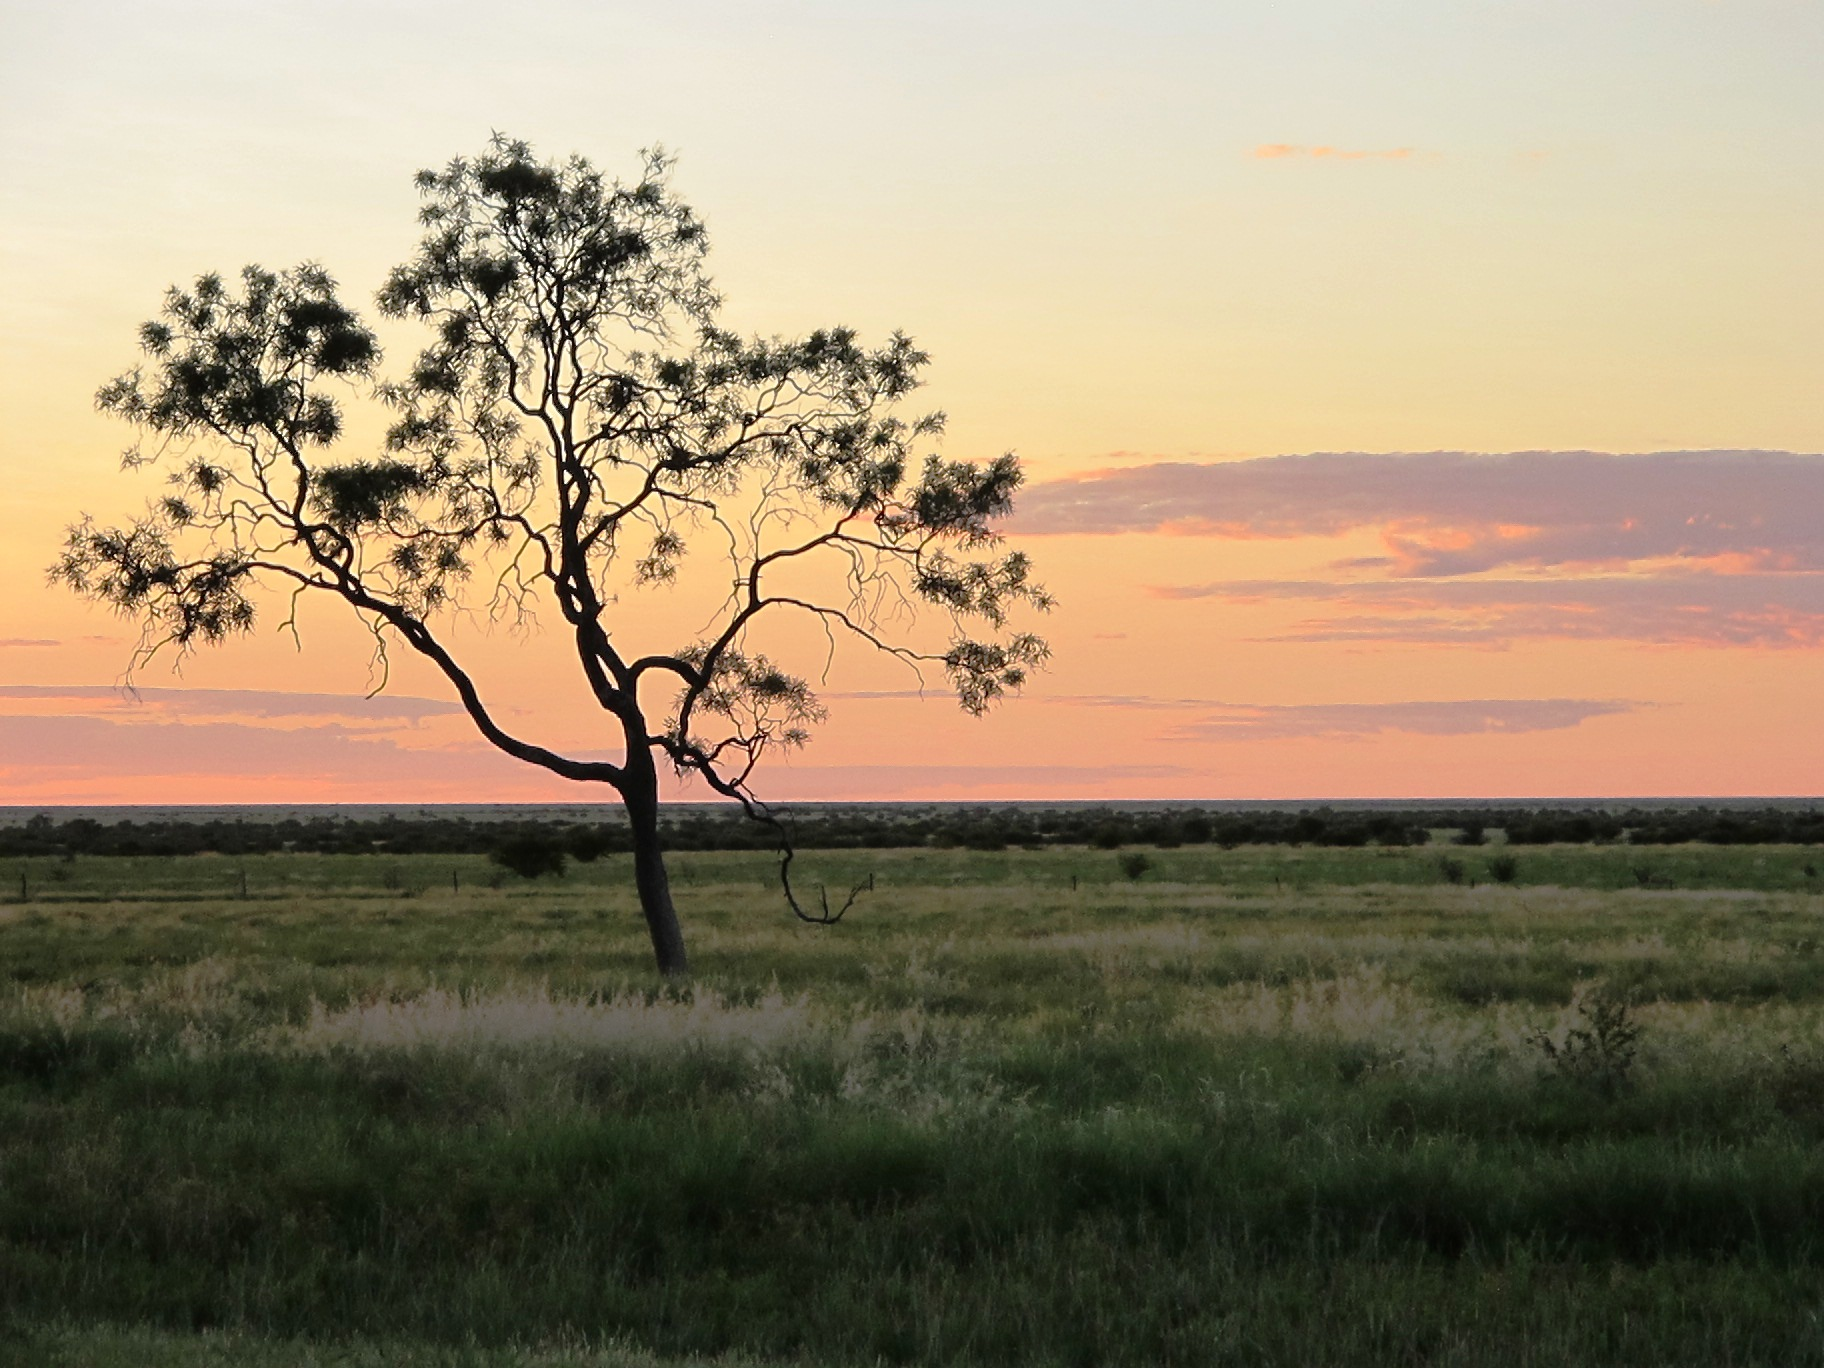 Sunset in the Lake Eyre Basin.